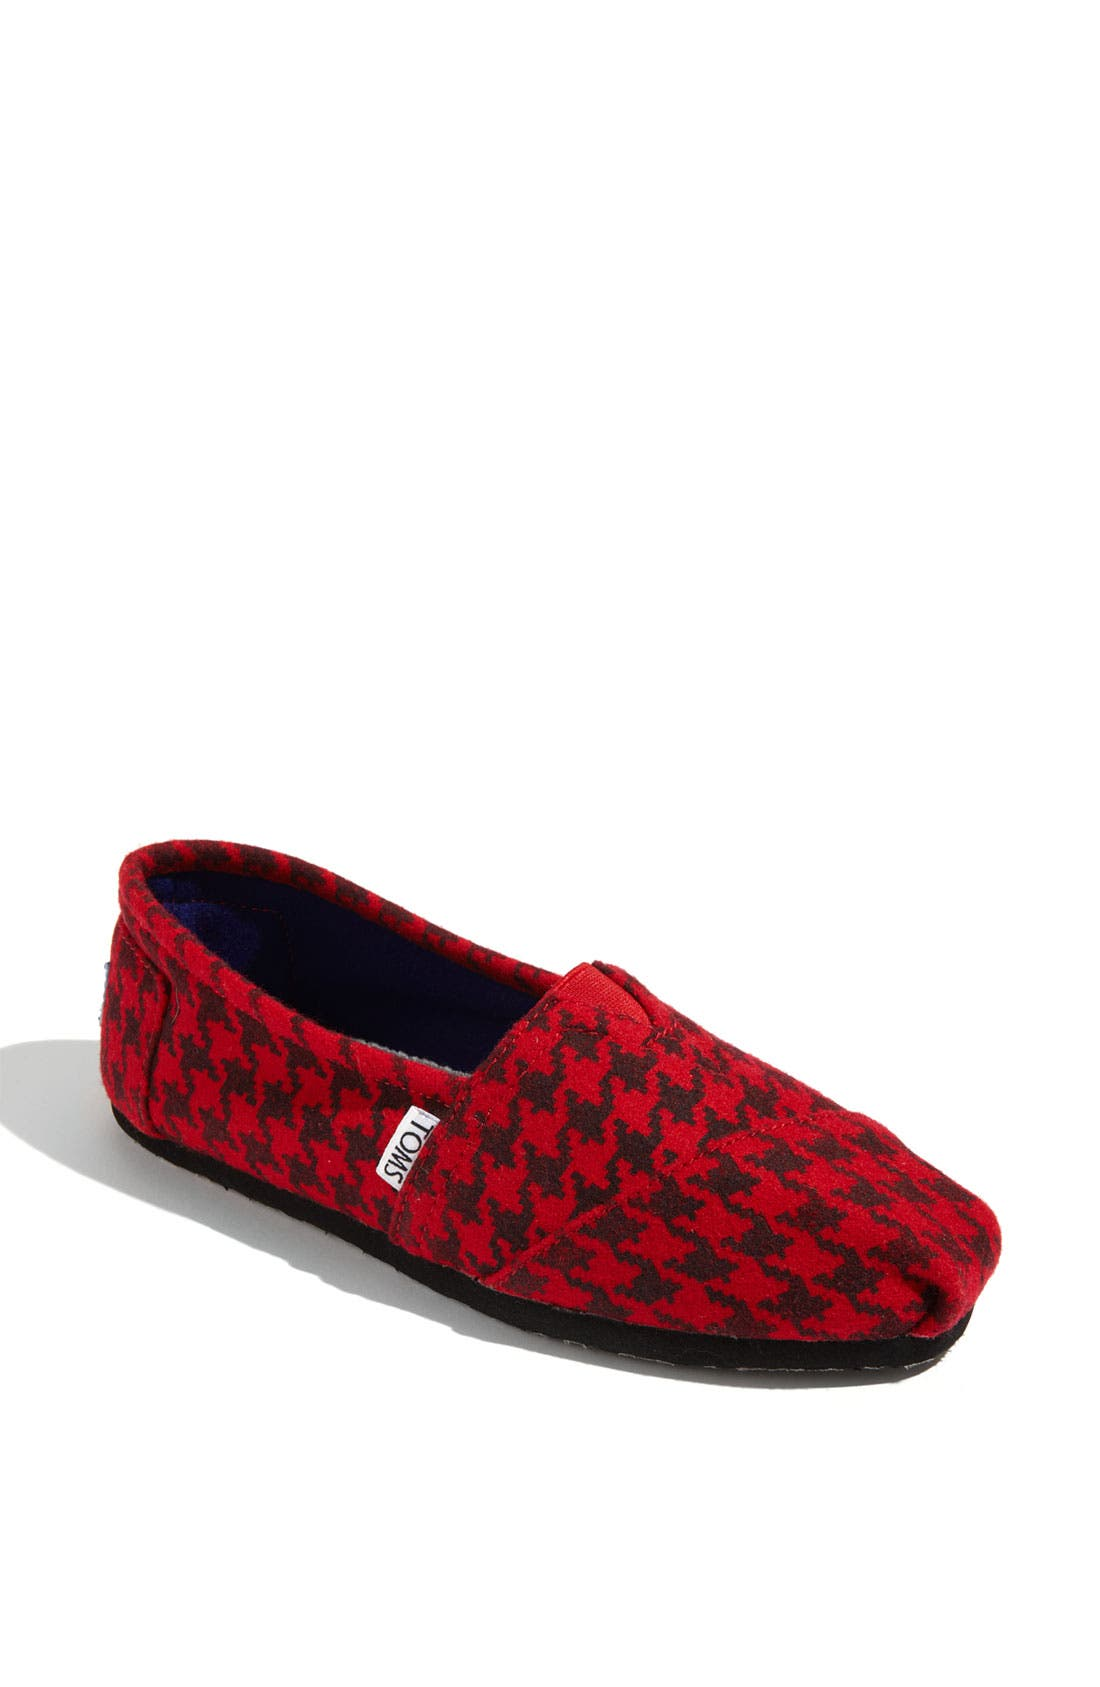 Main Image - TOMS 'Classic' Houndstooth Slip-On (Women)